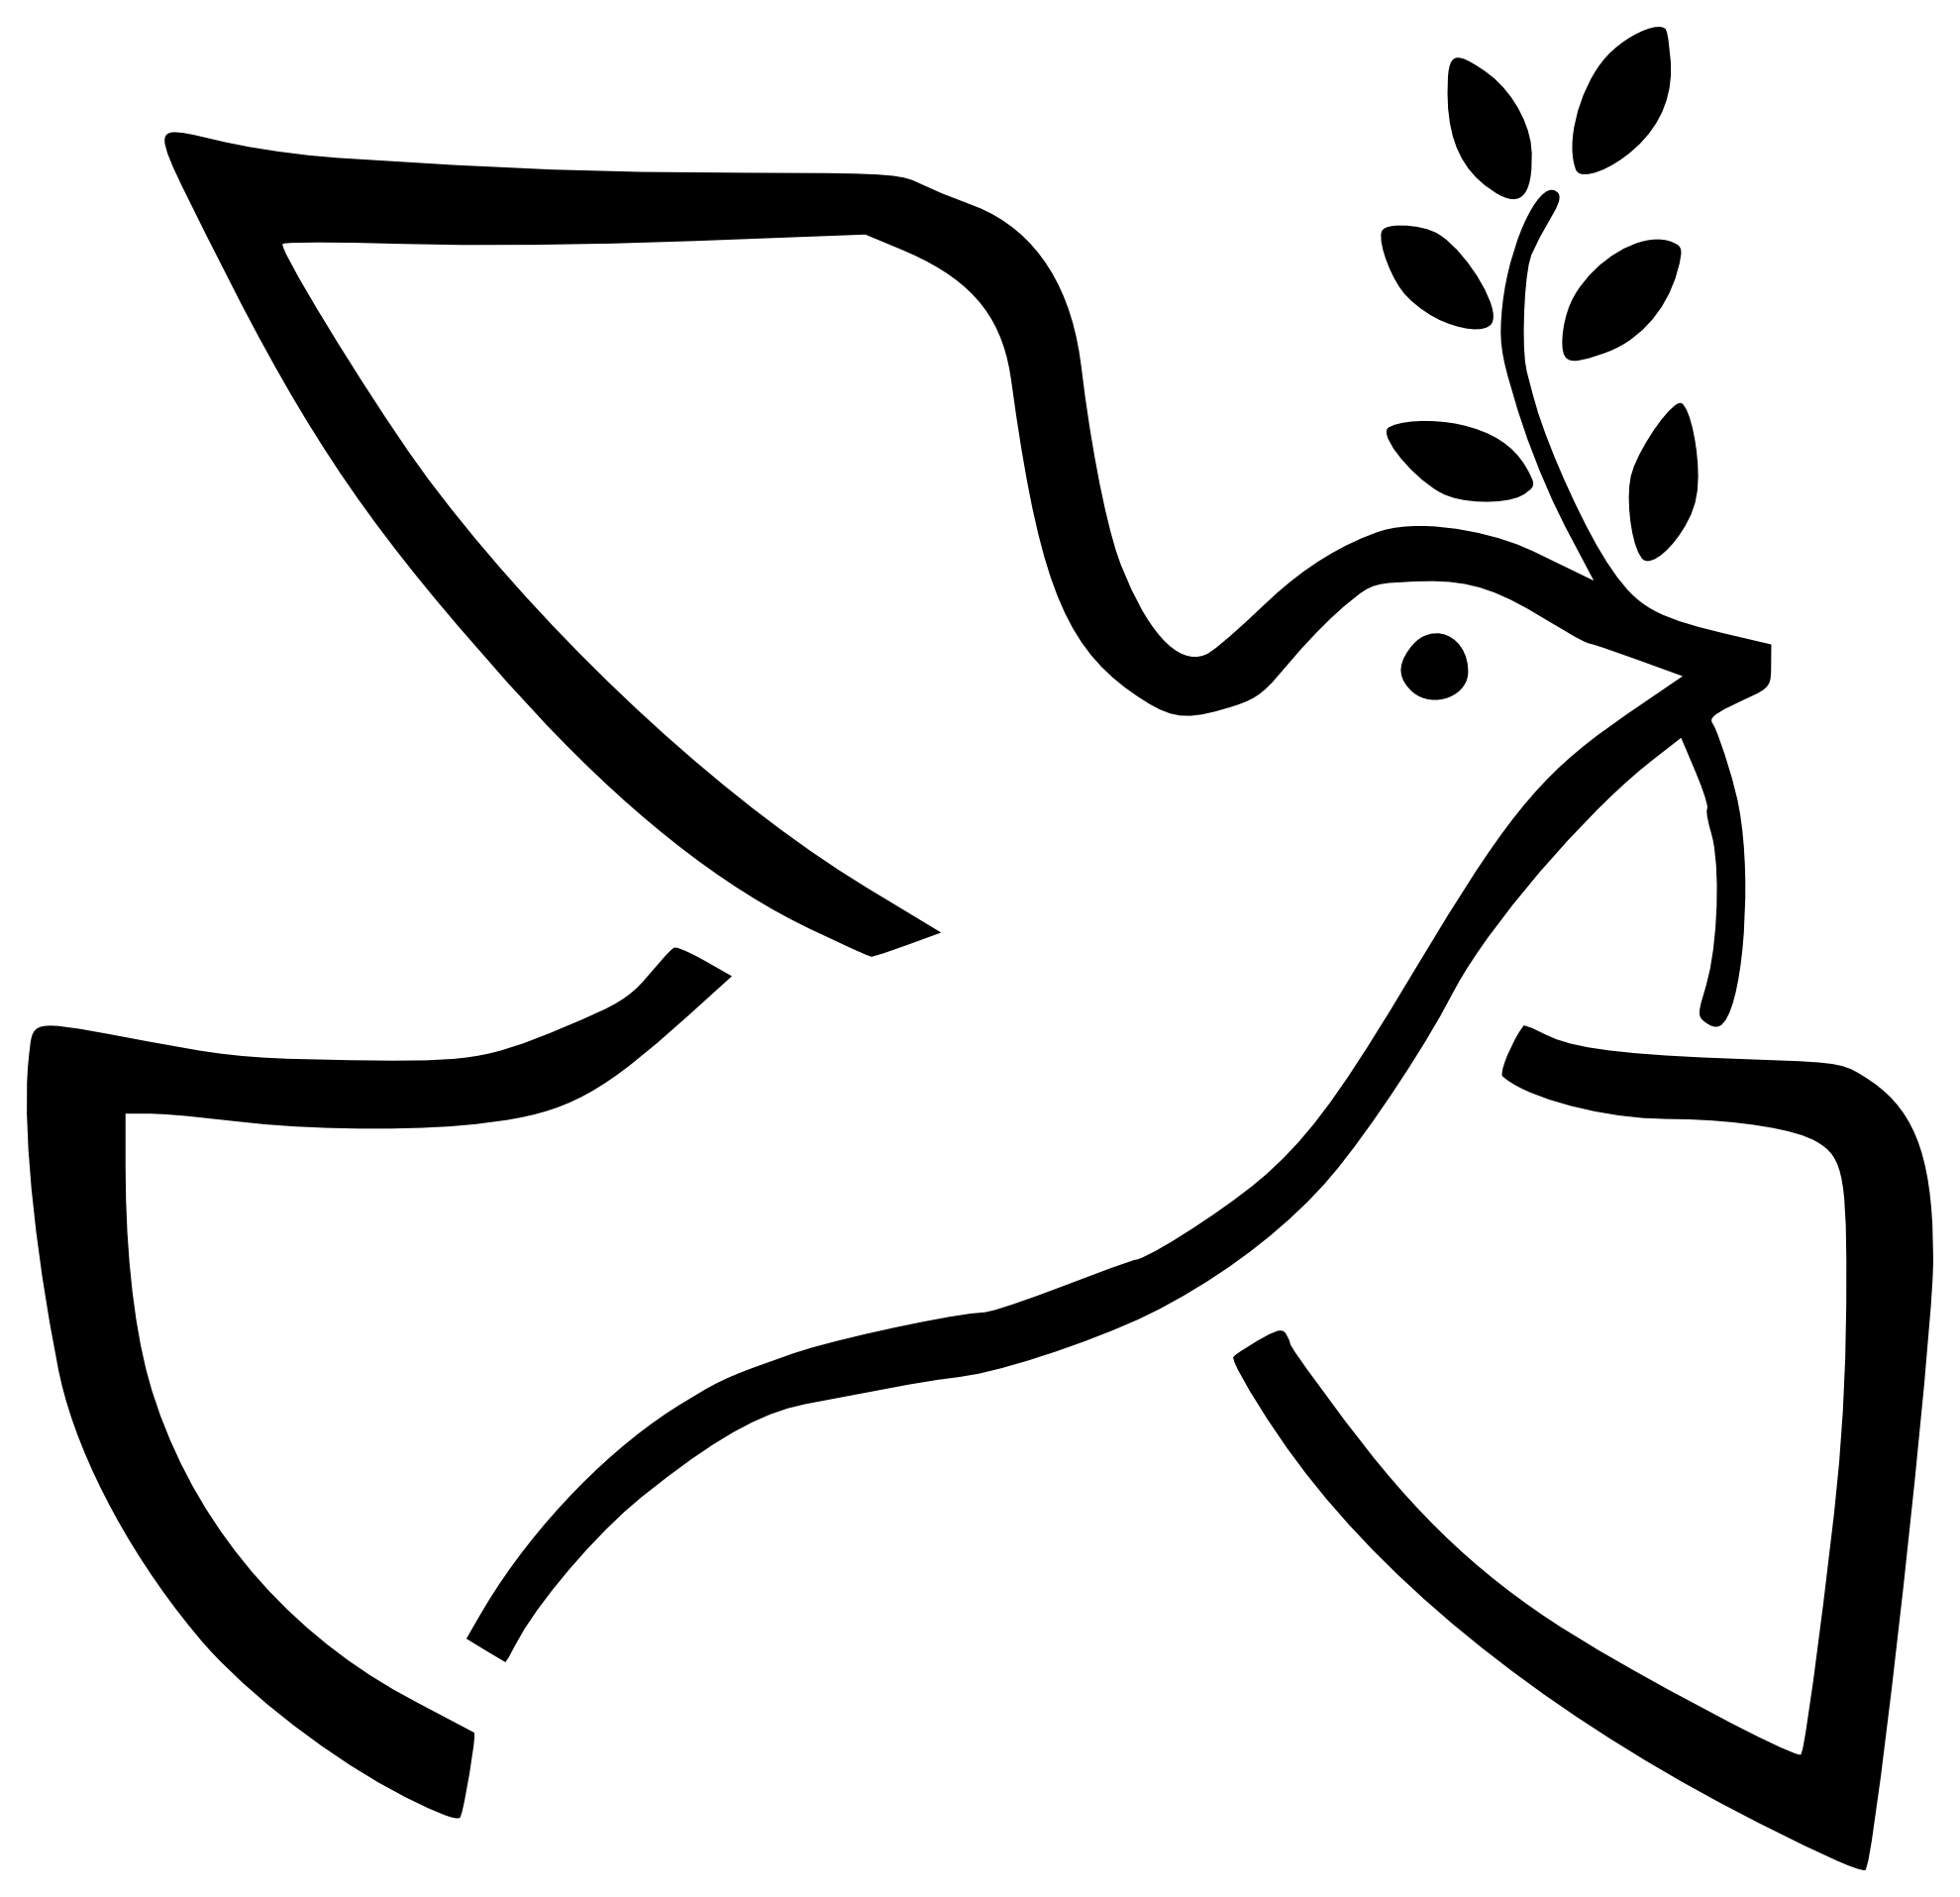 png royalty free Dove black and white. Thought clipart intention